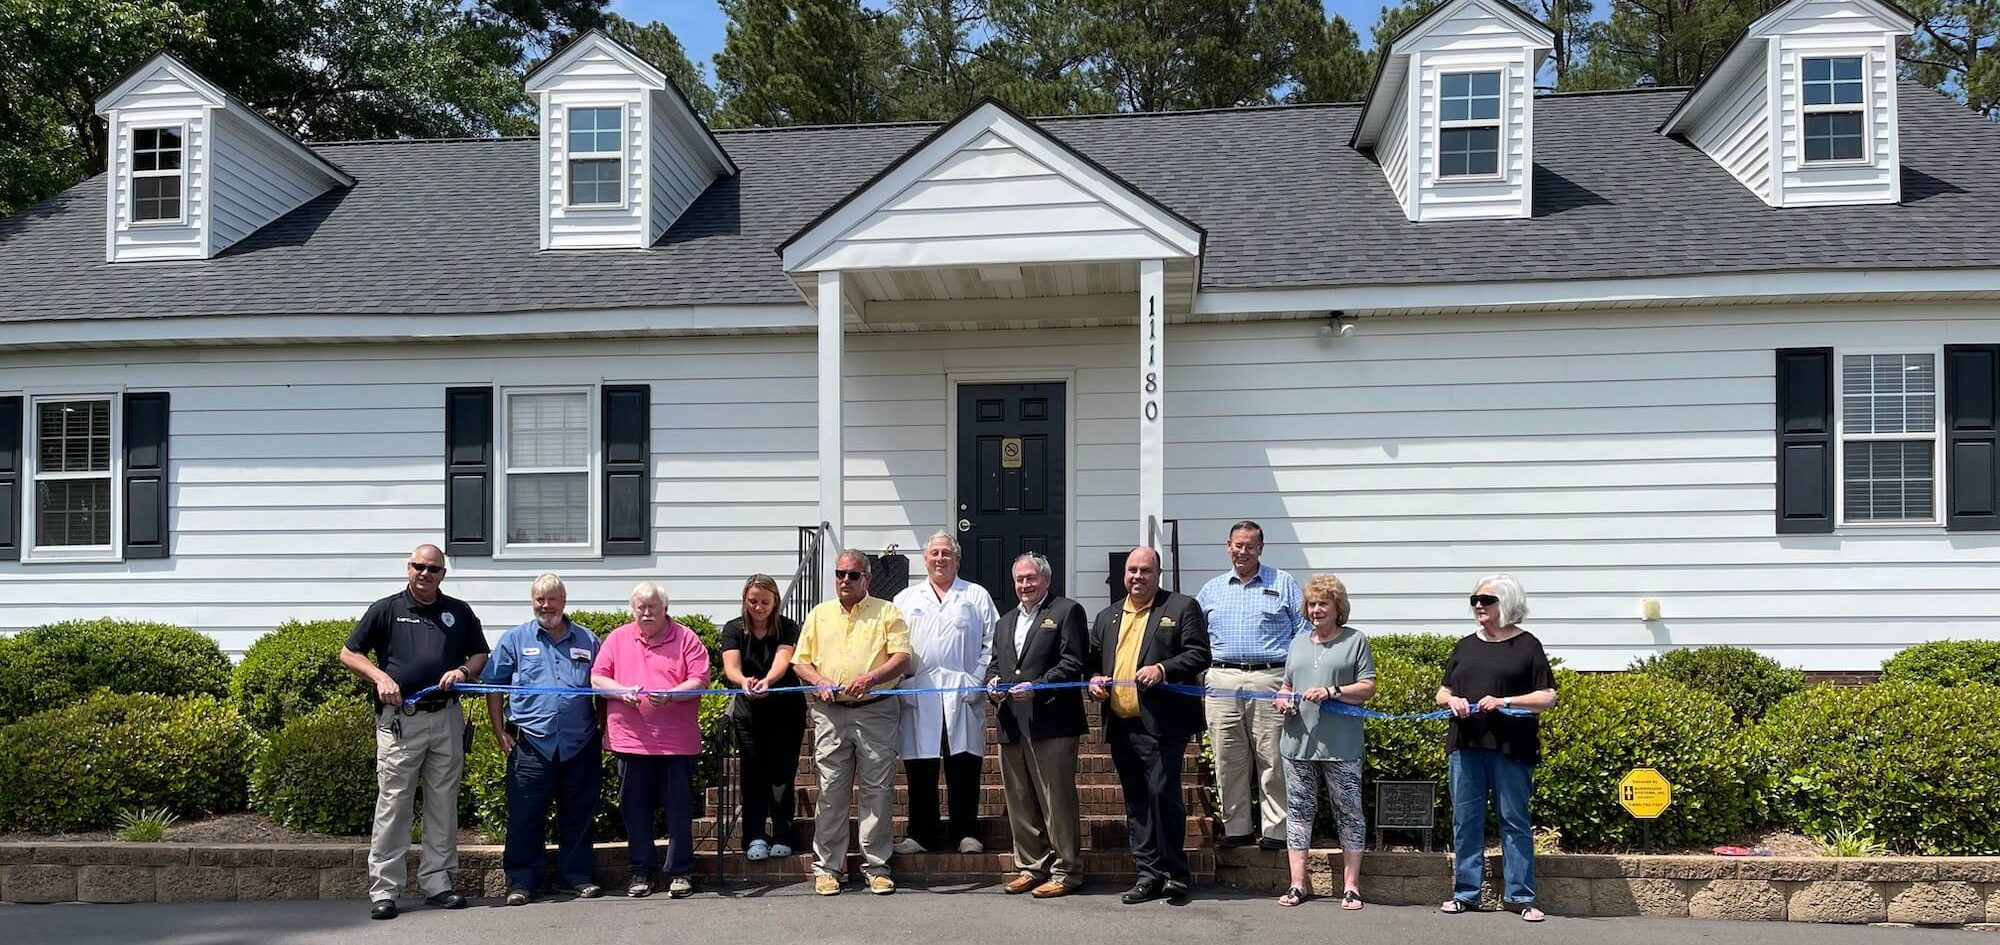 Middlesex NC Dentist Office Ribbon Cutting